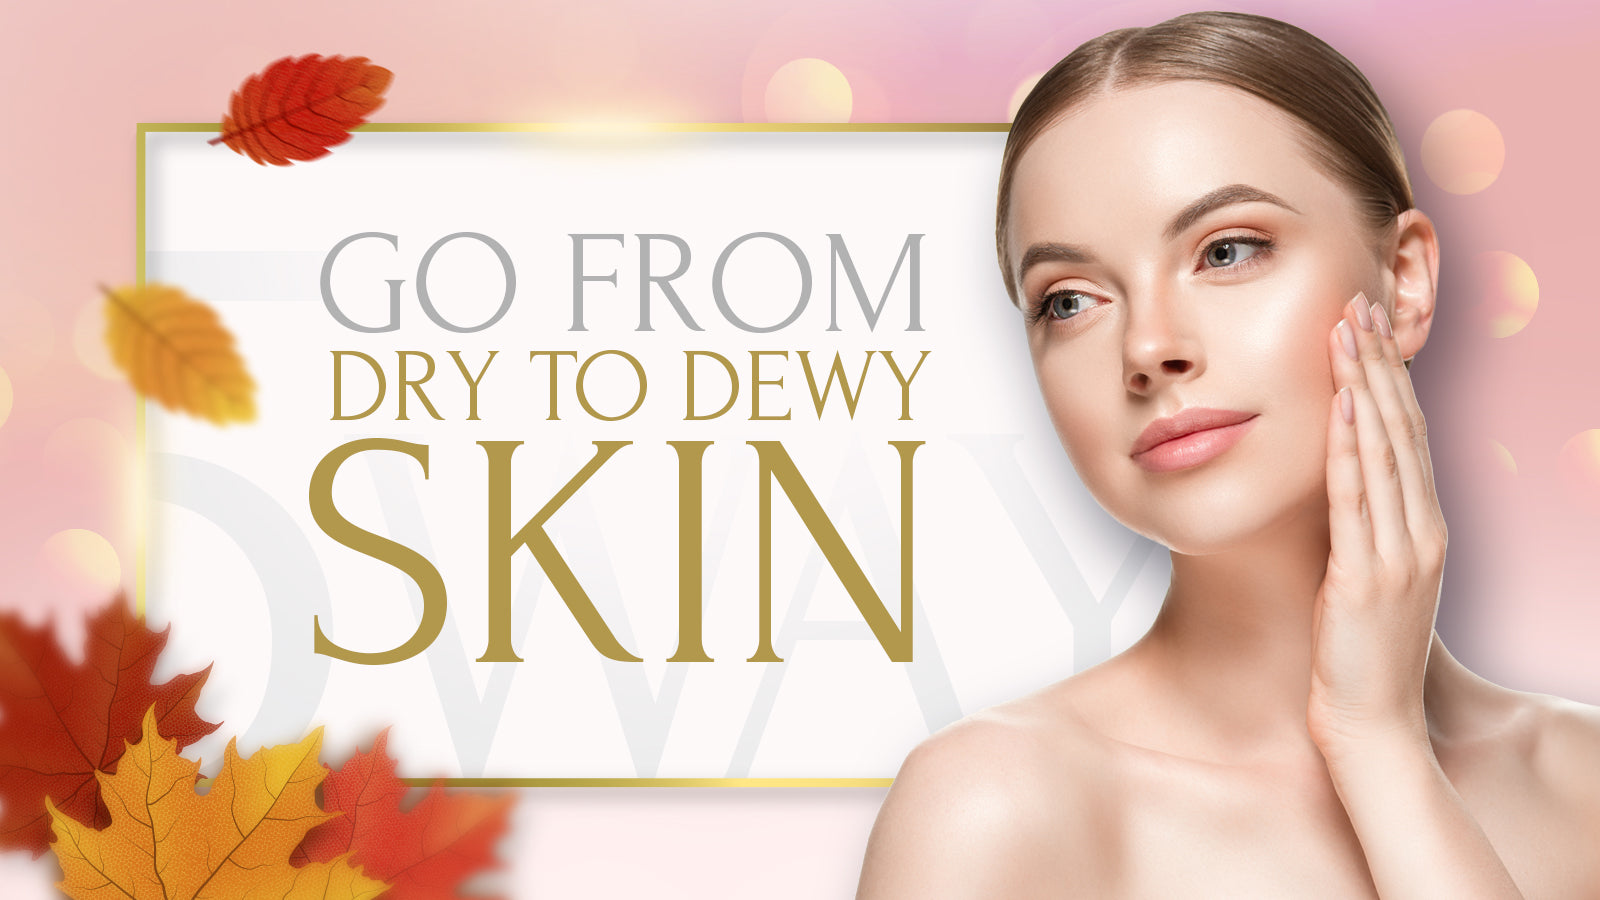 Autumn Skincare: Go From Dry To Dewy with these 5 simple steps!